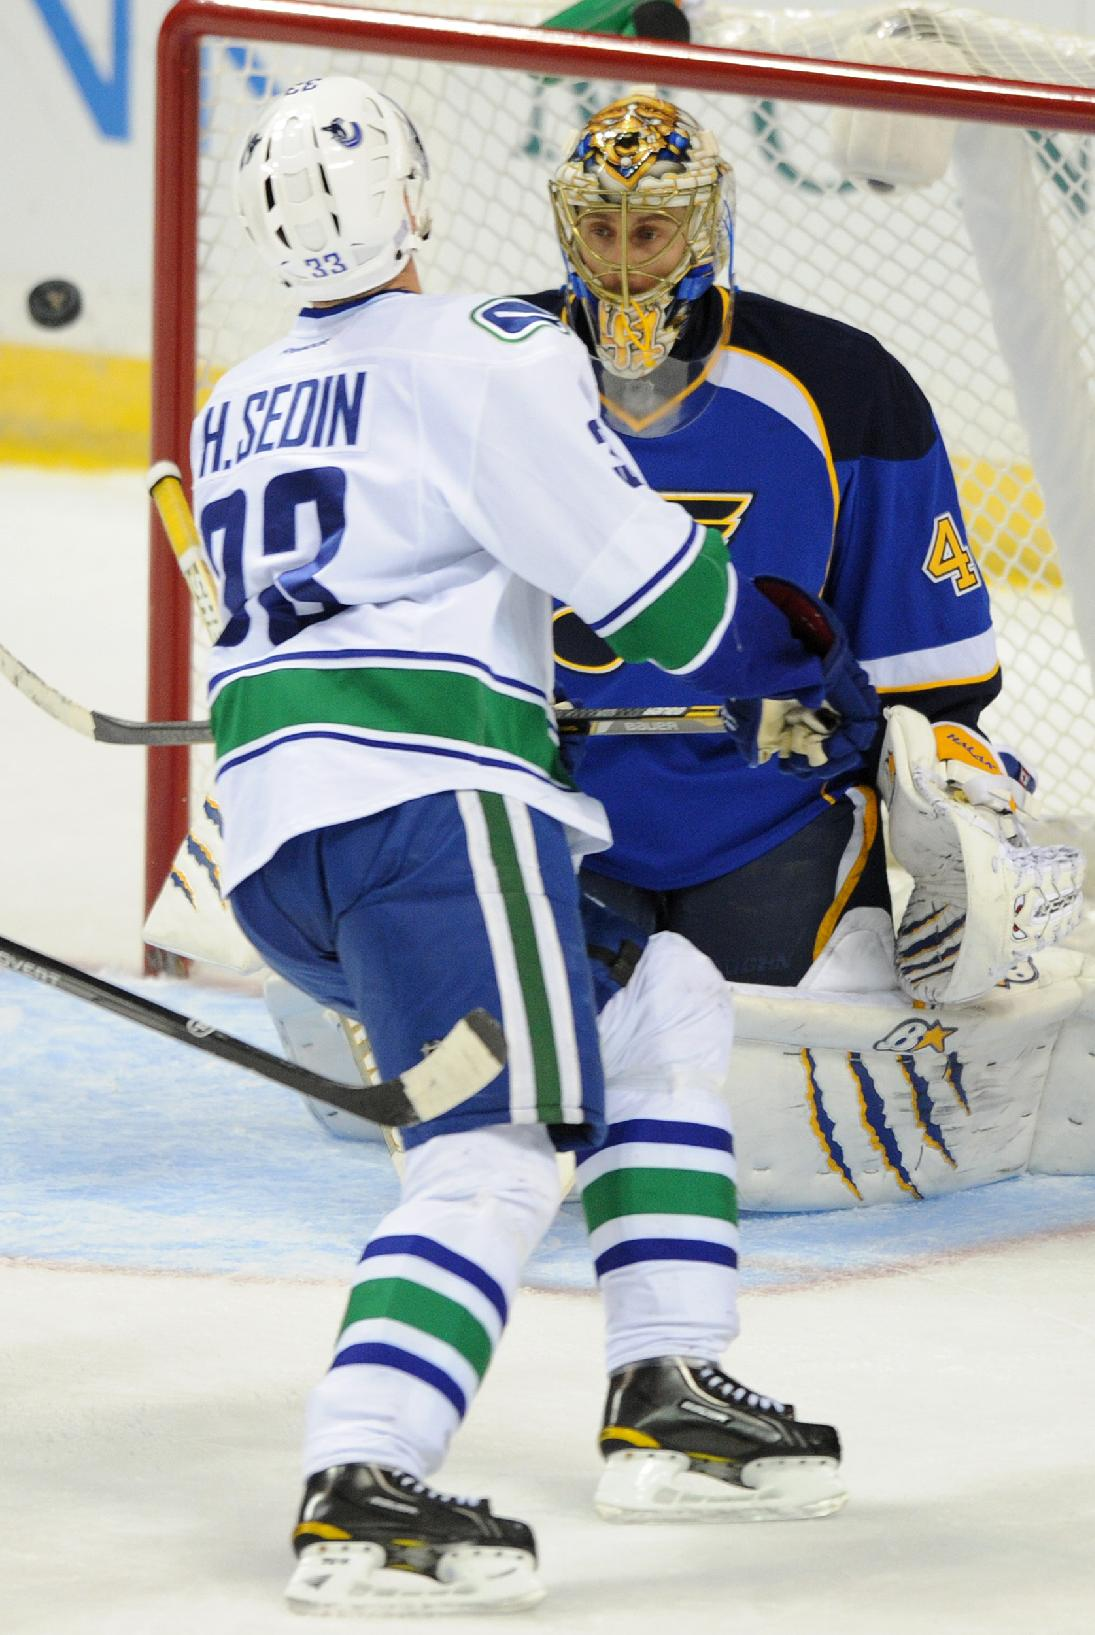 St. Louis Blues' goalie Jaroslav Halak (41), of Slovakia, blocks a shot by Vancouver Canucks' Henrik Sedin (33), of Sweden, during the third period of an NHL hockey game on Friday, Oct. 25, 2013, in St. Louis